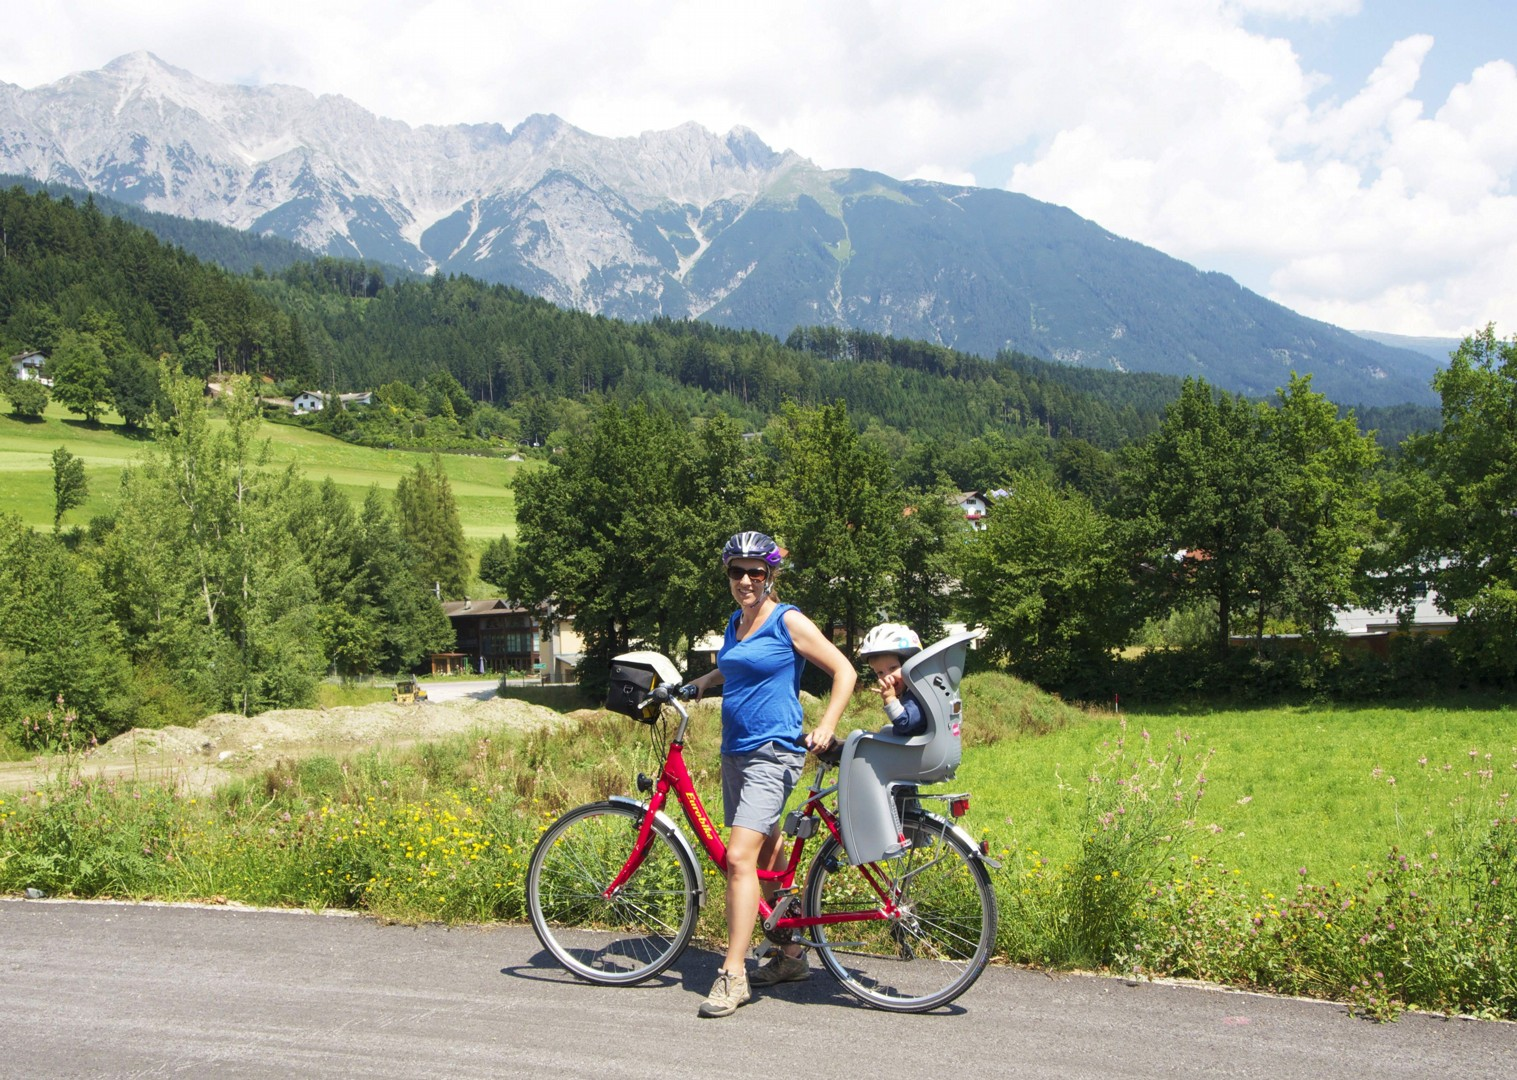 young-child-austrian-cycling-holiday-valleys.jpg - Austria - Tauern Valleys - Self-Guided Family Cycling Holiday - Family Cycling